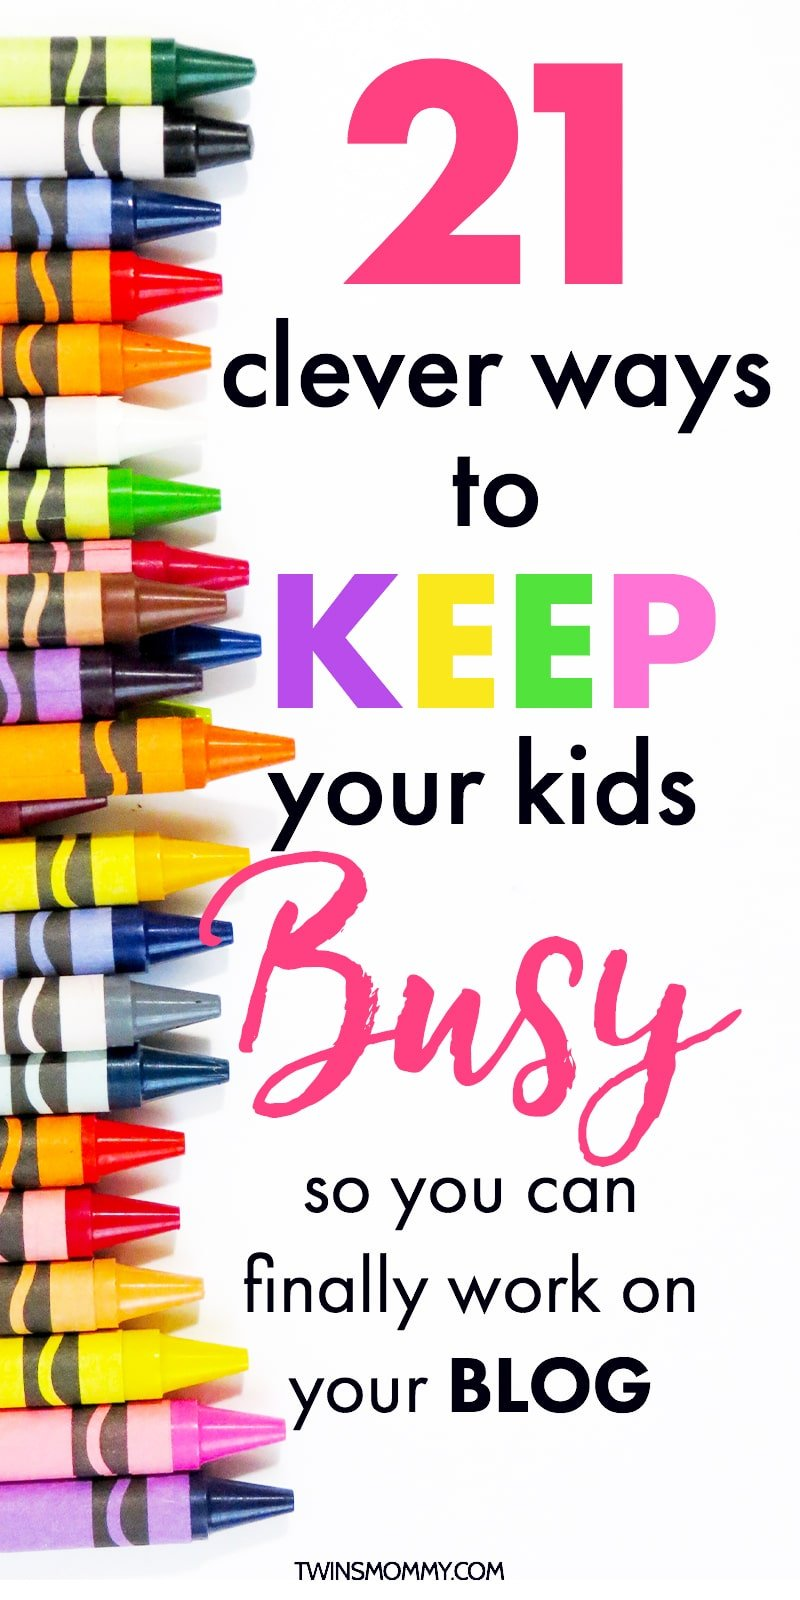 24bee05df 21 Clever Ways to Keep Kids Busy (So Mom Can Blog!) - Twins Mommy